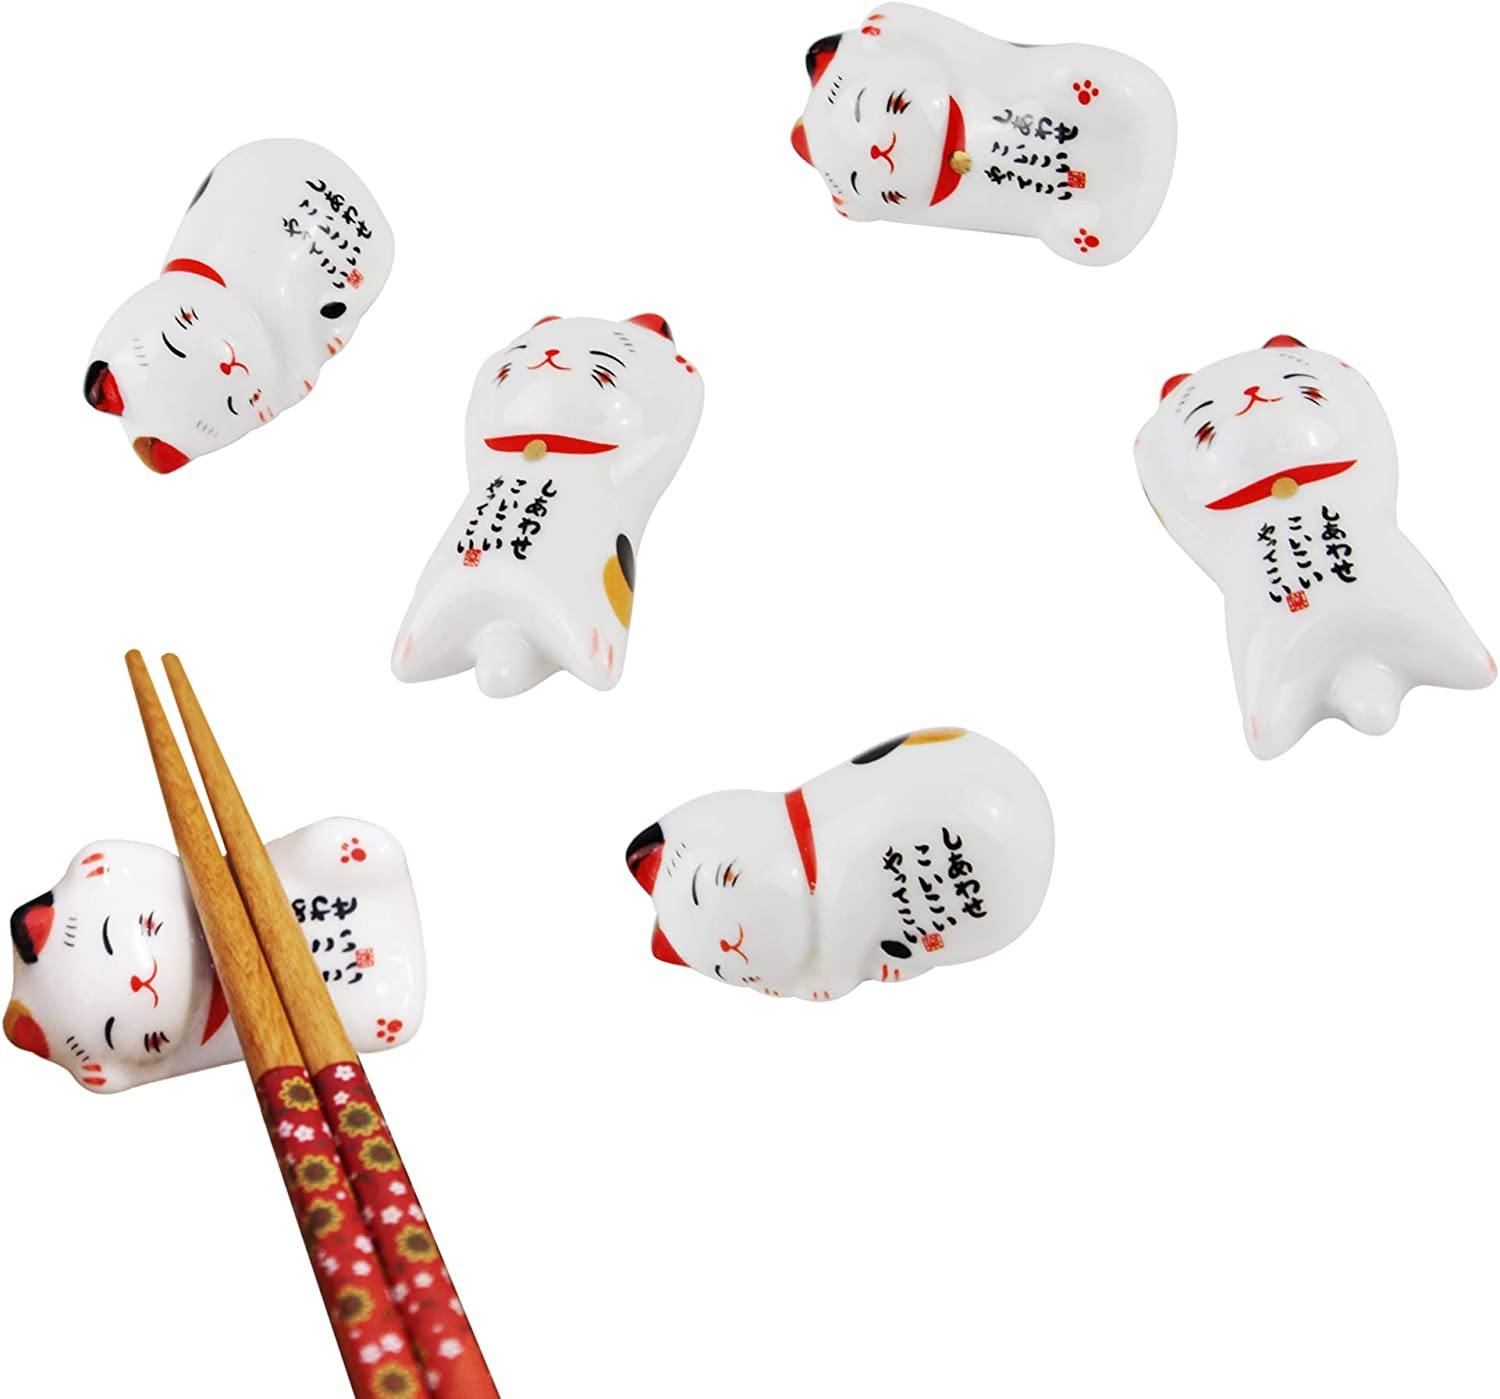 6 Pcs Japanese Lucky Cat Chopsticks Rest Ceramic Dinner Spoon Rest Fork Knife Tableware Holder w Box for Decor Housewarming Gift